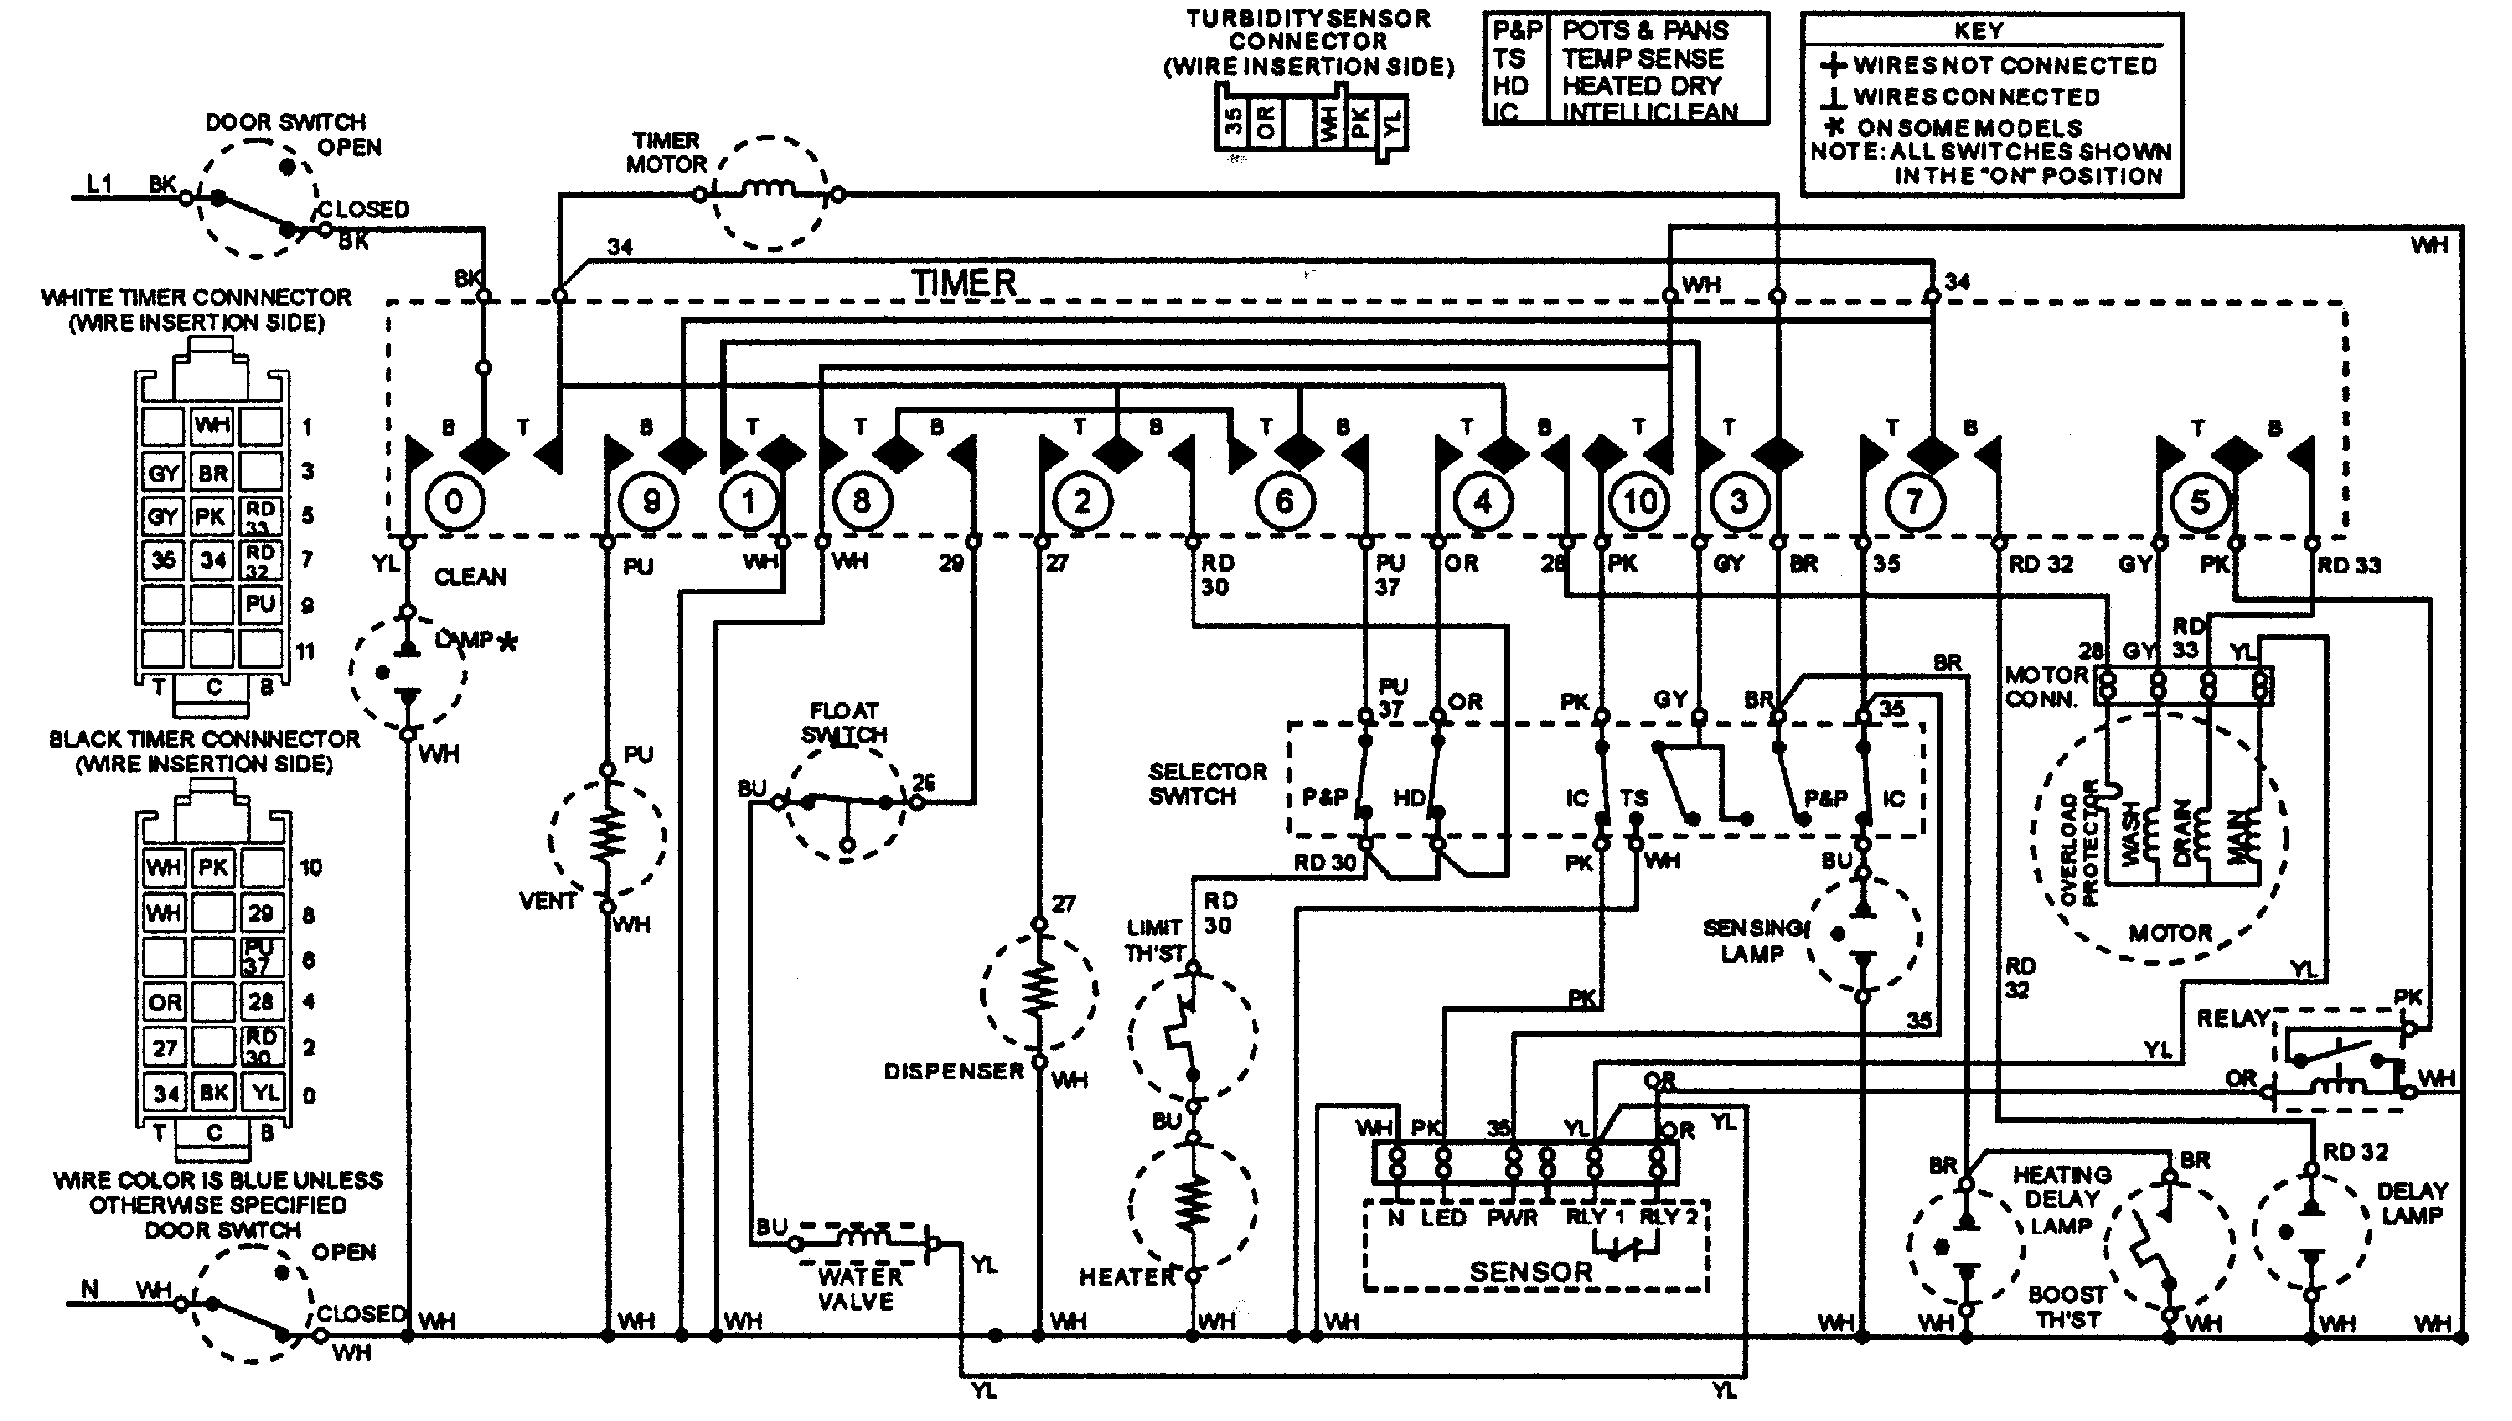 wiring information parts whirlpool wiring diagrams whirlpool dryer schematic wiring diagram at bakdesigns.co